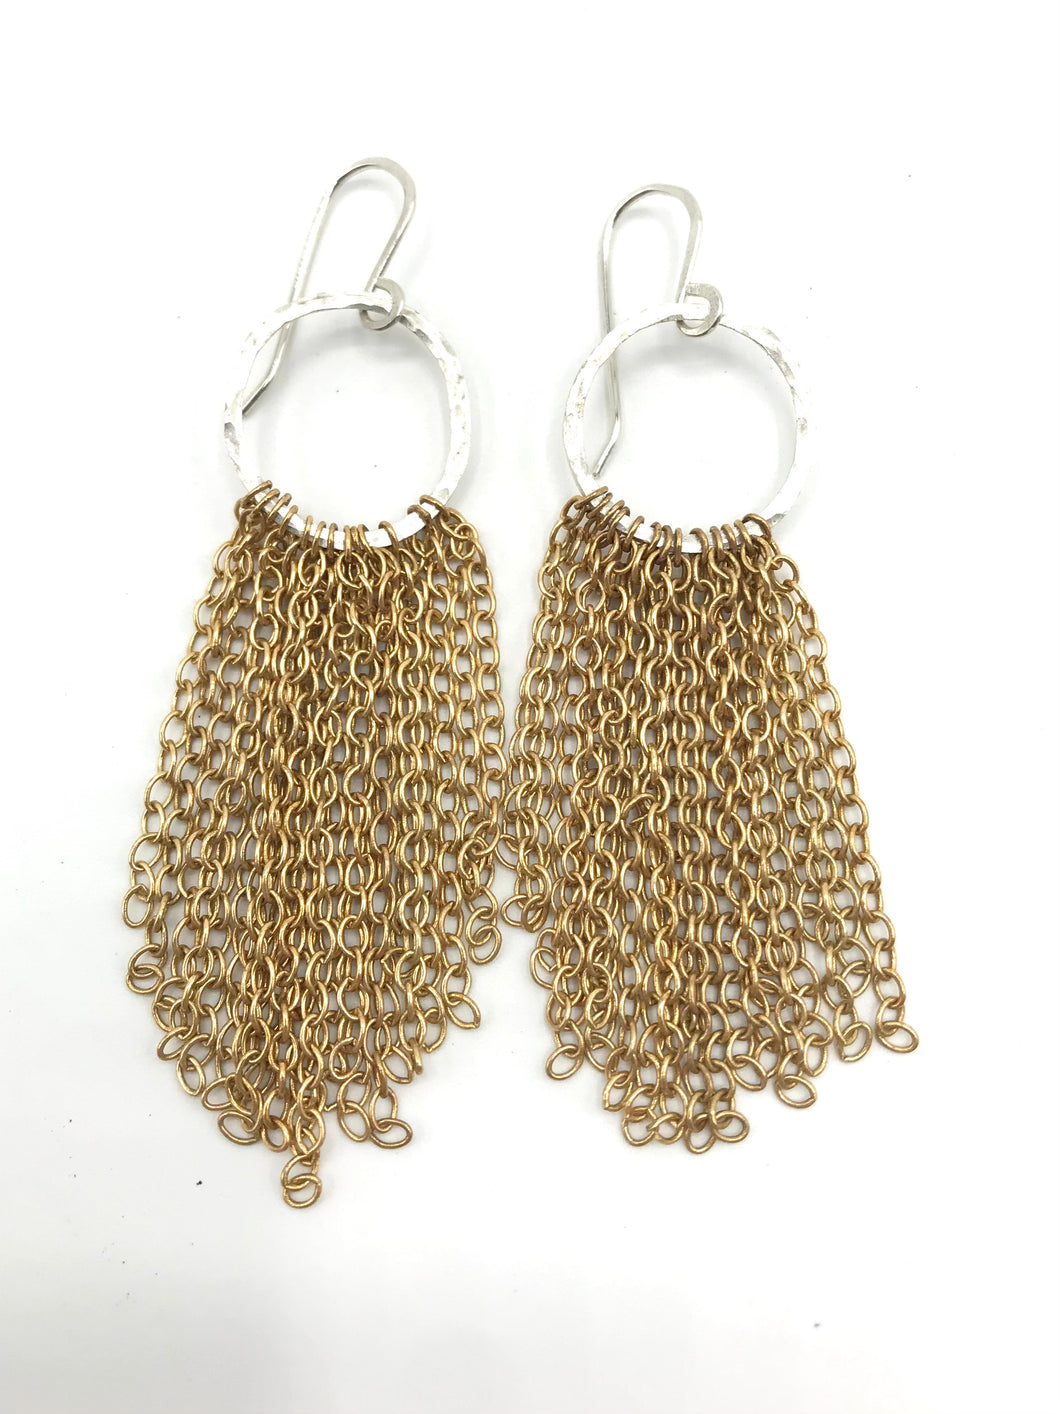 Brass and silver tassel earrings